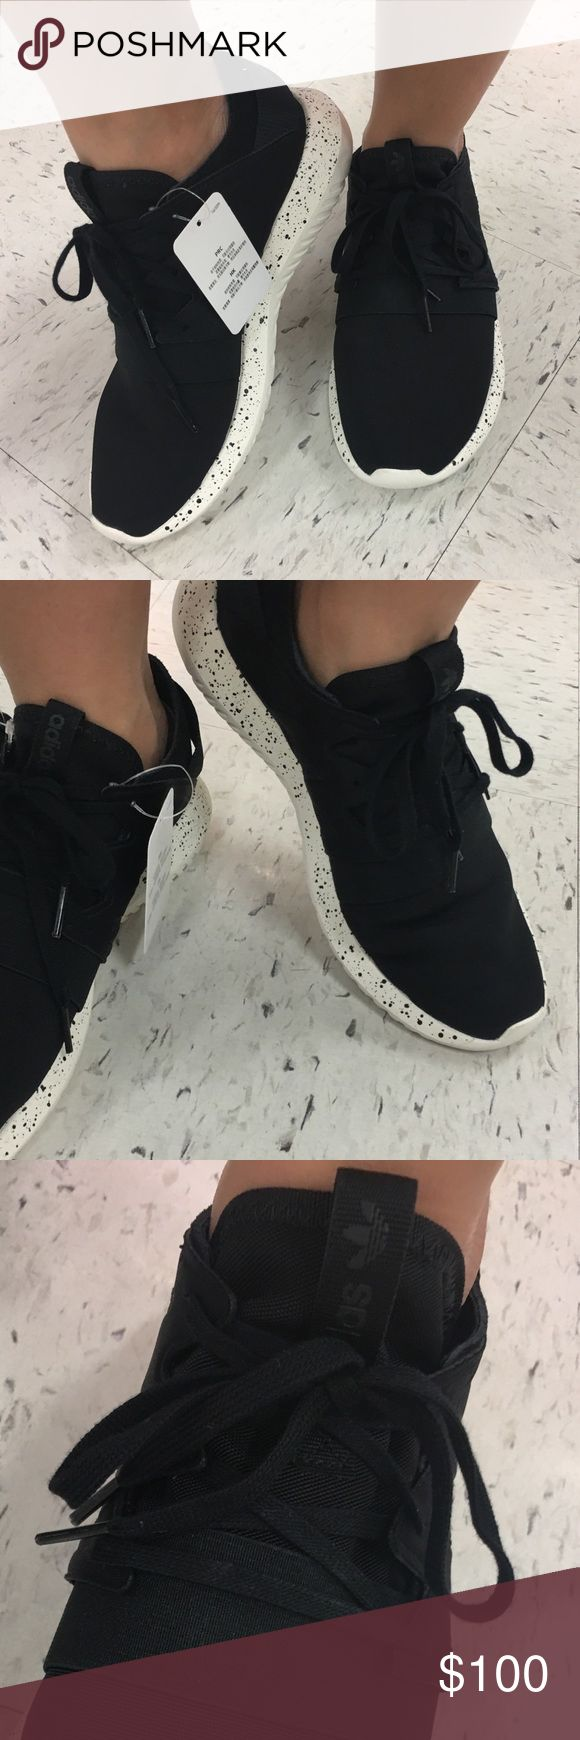 adidas Originals Women's Tubular Viral W Running S Brand New with tags adidas all black and white sole with black details tennis shoes. They are super comfortable to use for everyday wear with ankle pants. Or hit the gym with these beauties. adidas Shoes Sneakers